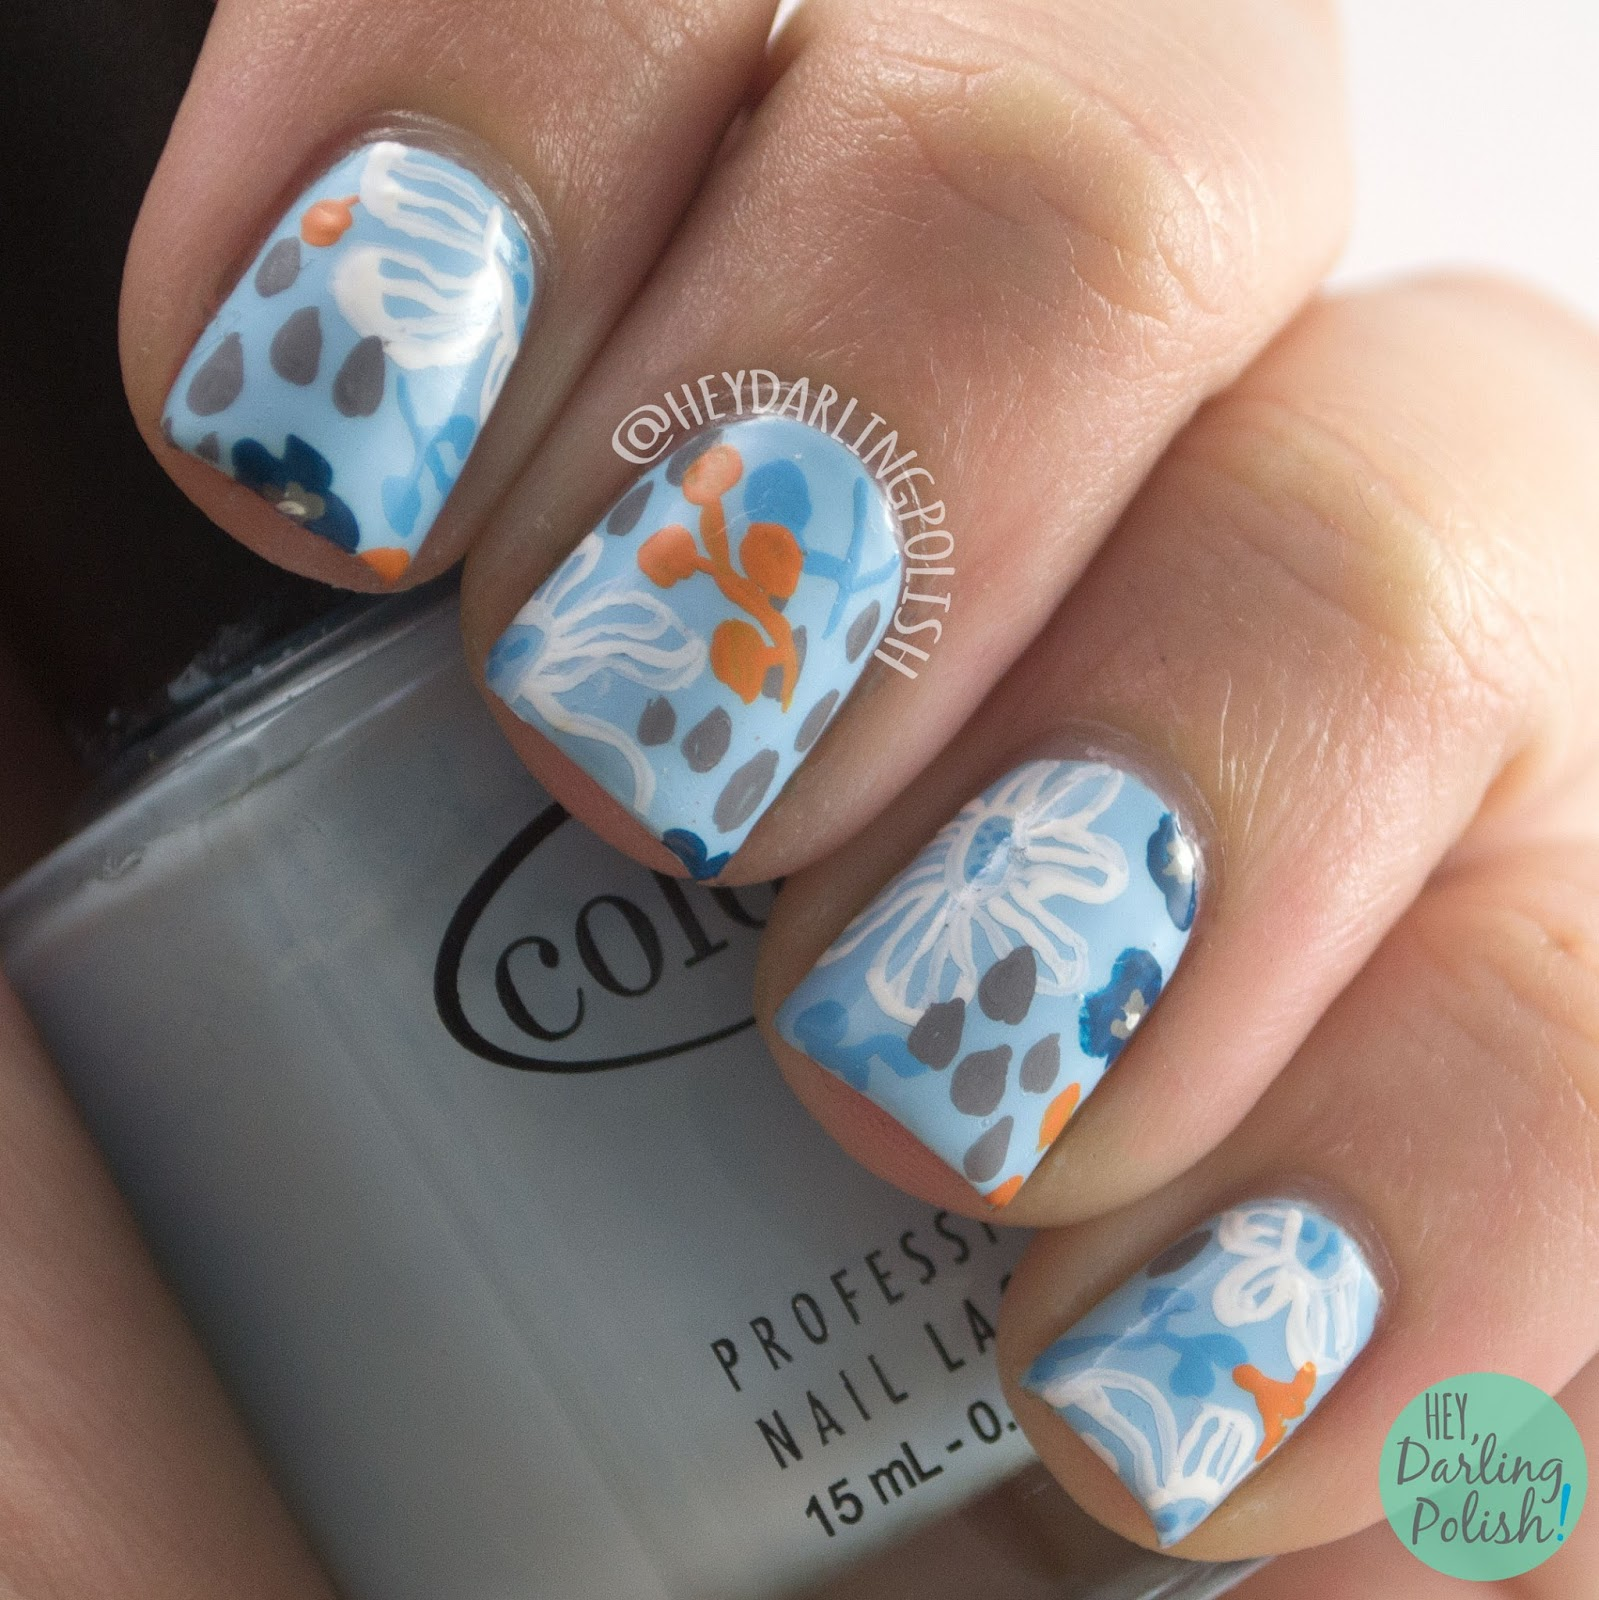 nails, nail art, nail polish, freehand, guest post, hey darling polish, pattern, floral, blue